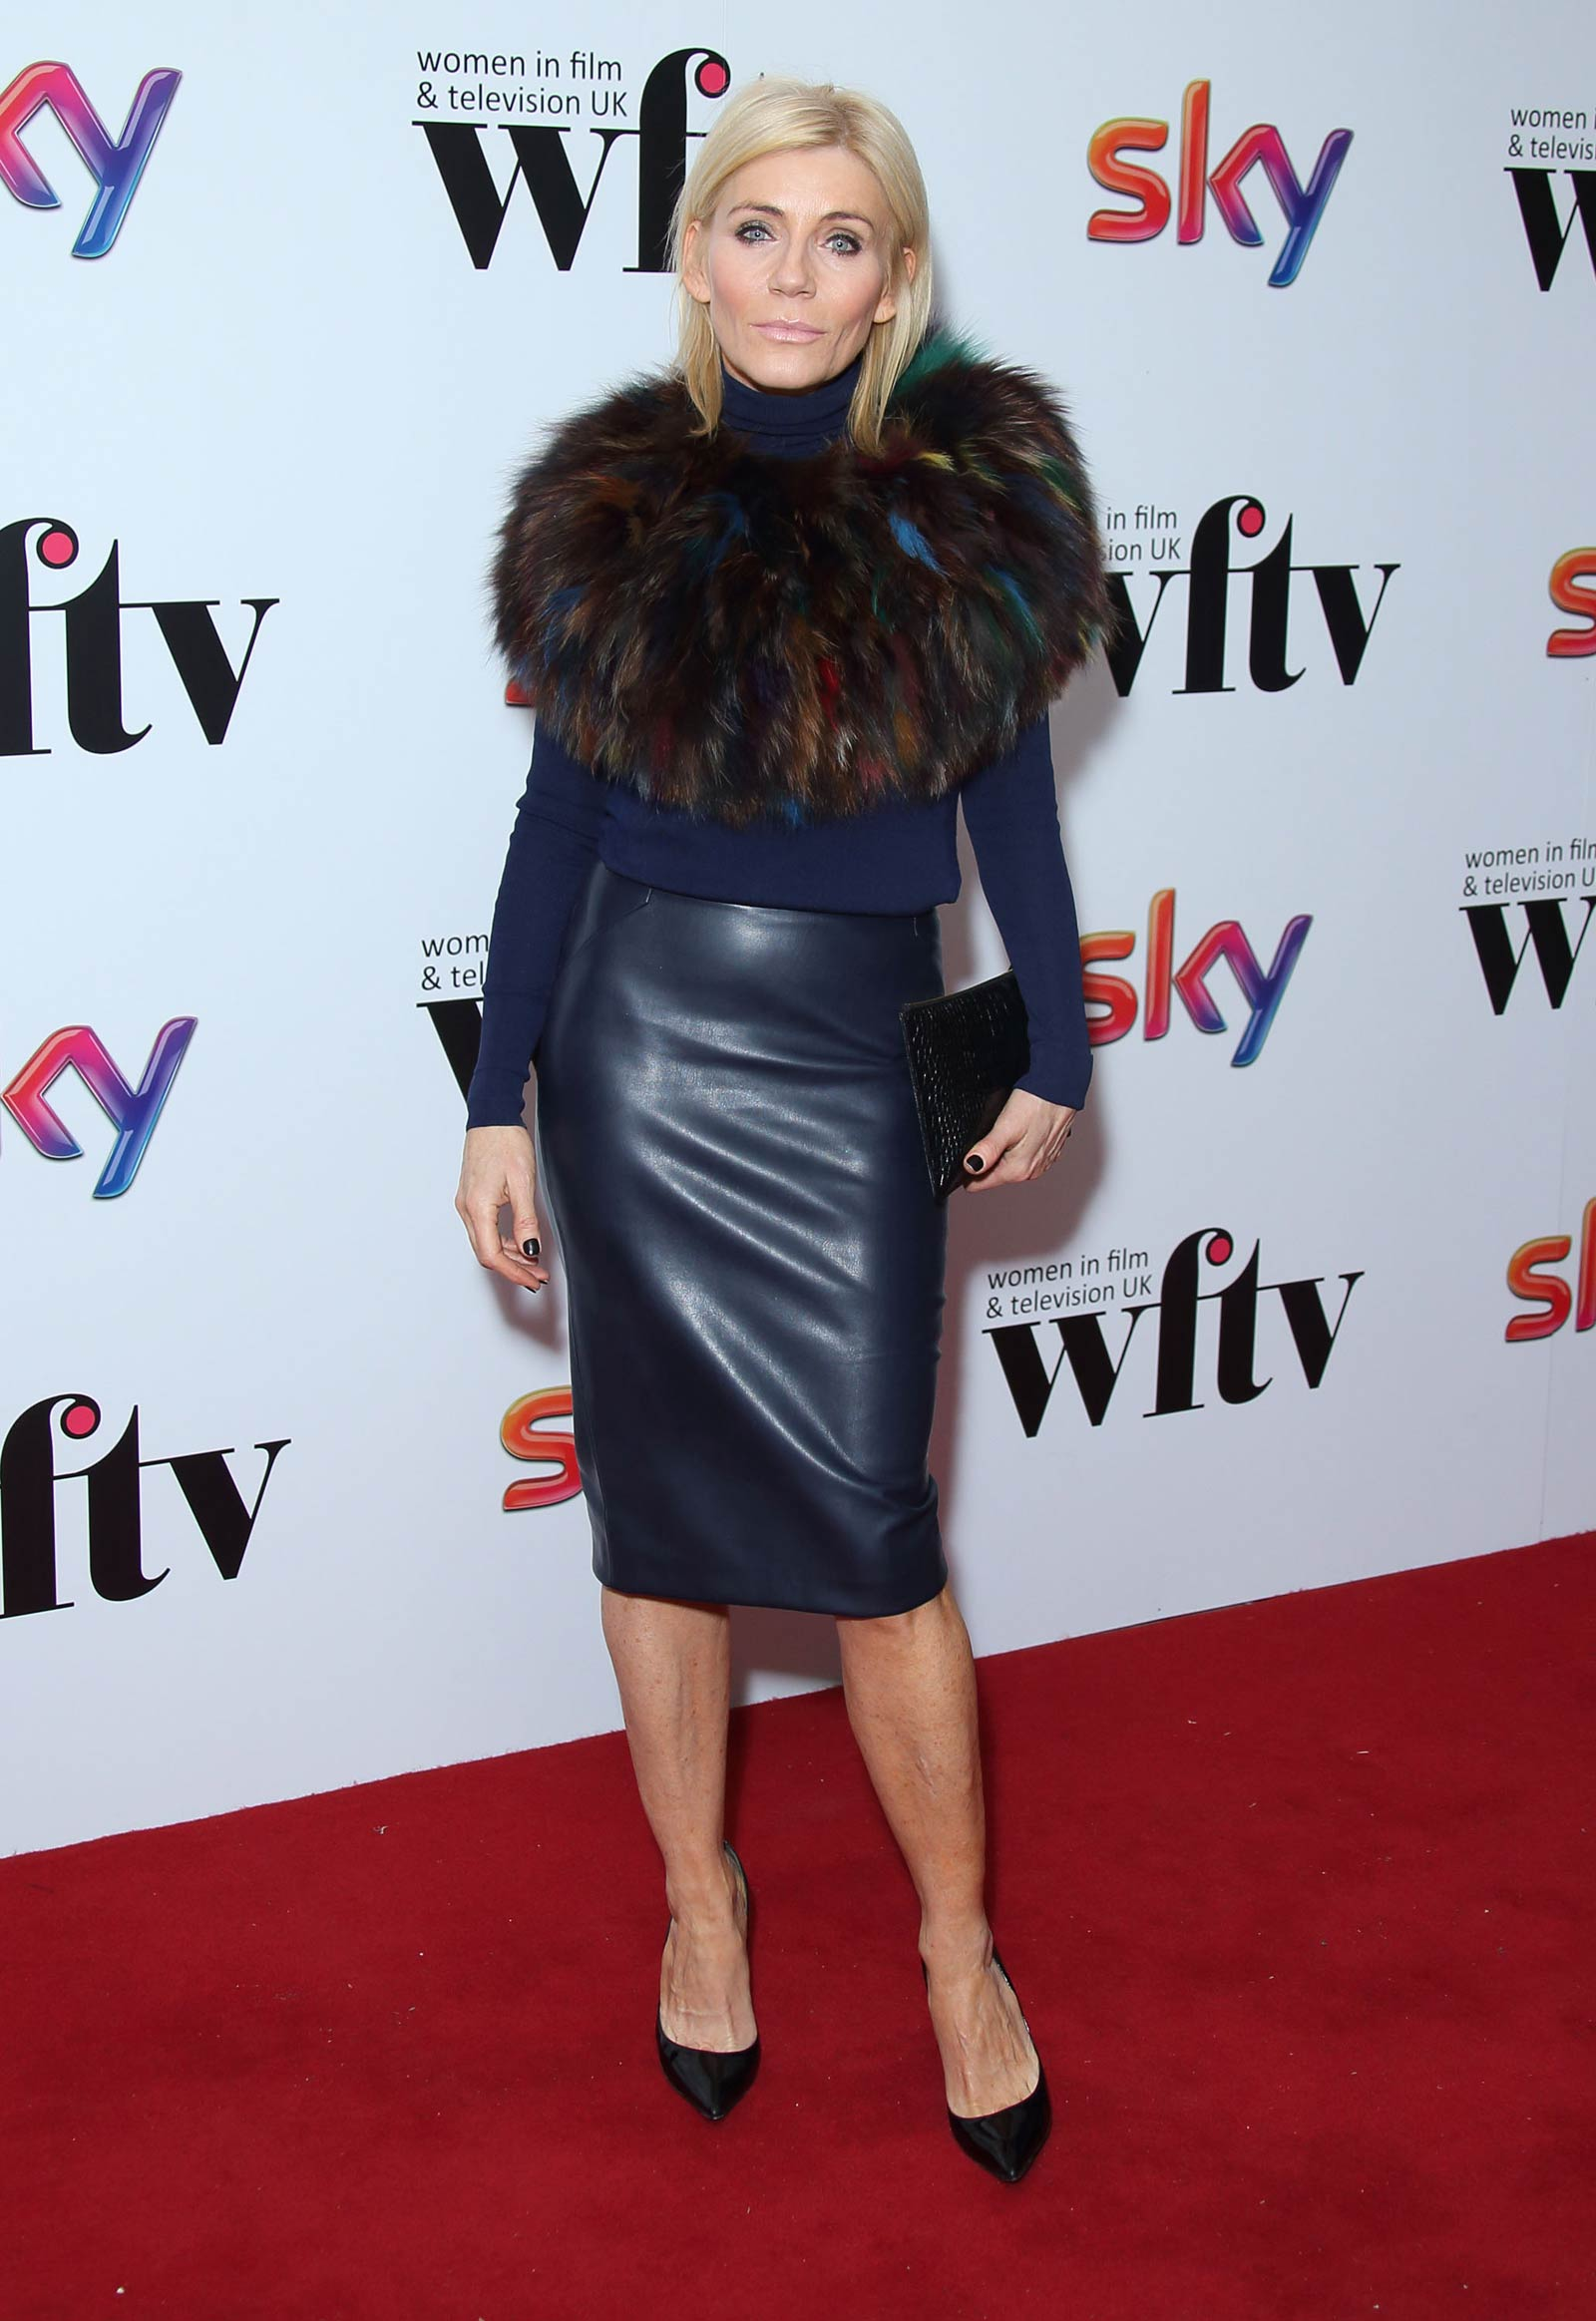 Michelle Collins attends Sky Women in Film & TV Awards